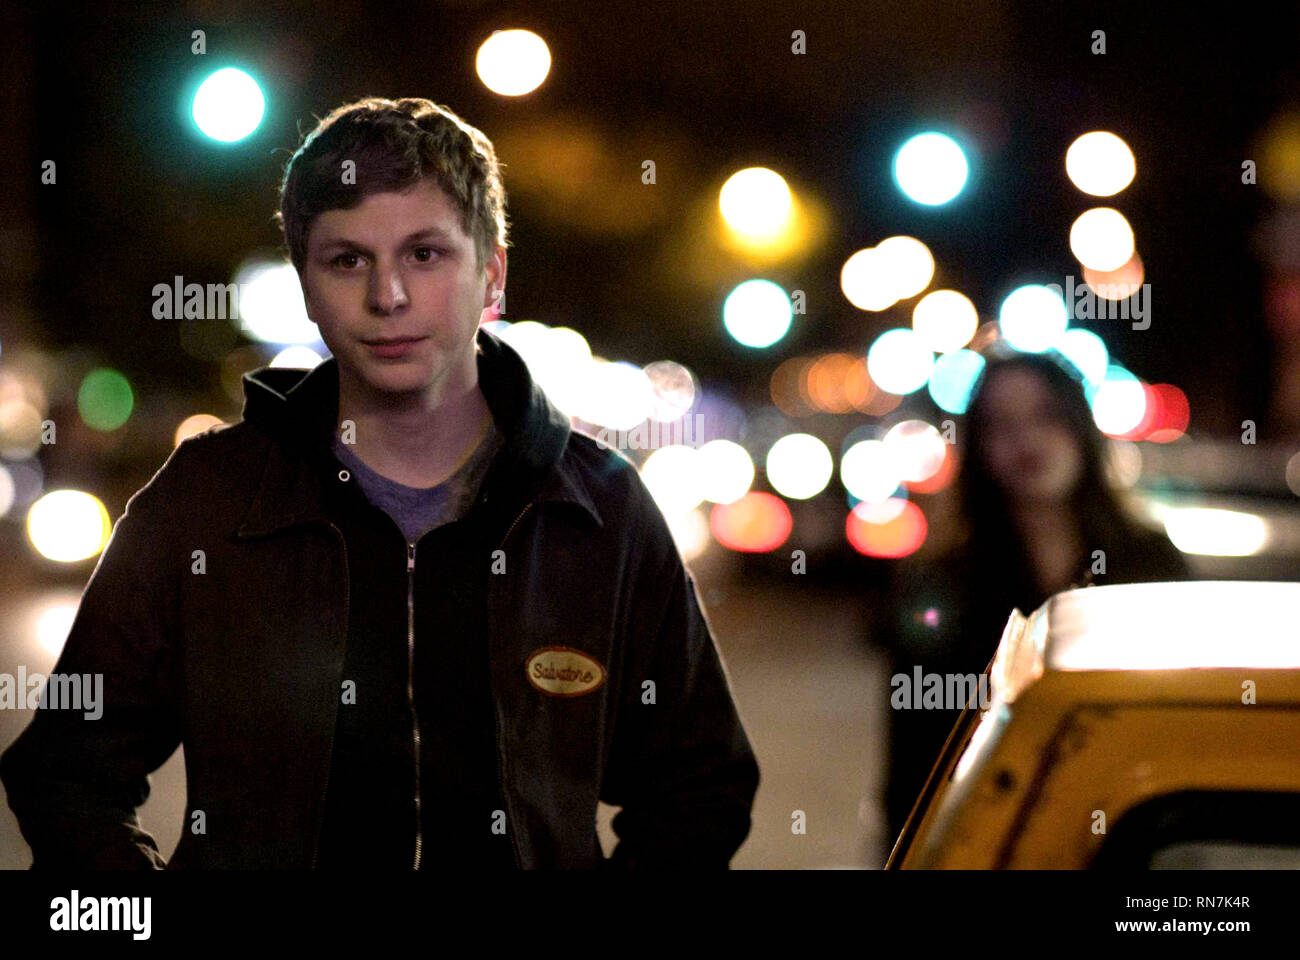 MICHAEL CERA, NICK AND NORAH'S INFINITE PLAYLIST, 2008 - Stock Image